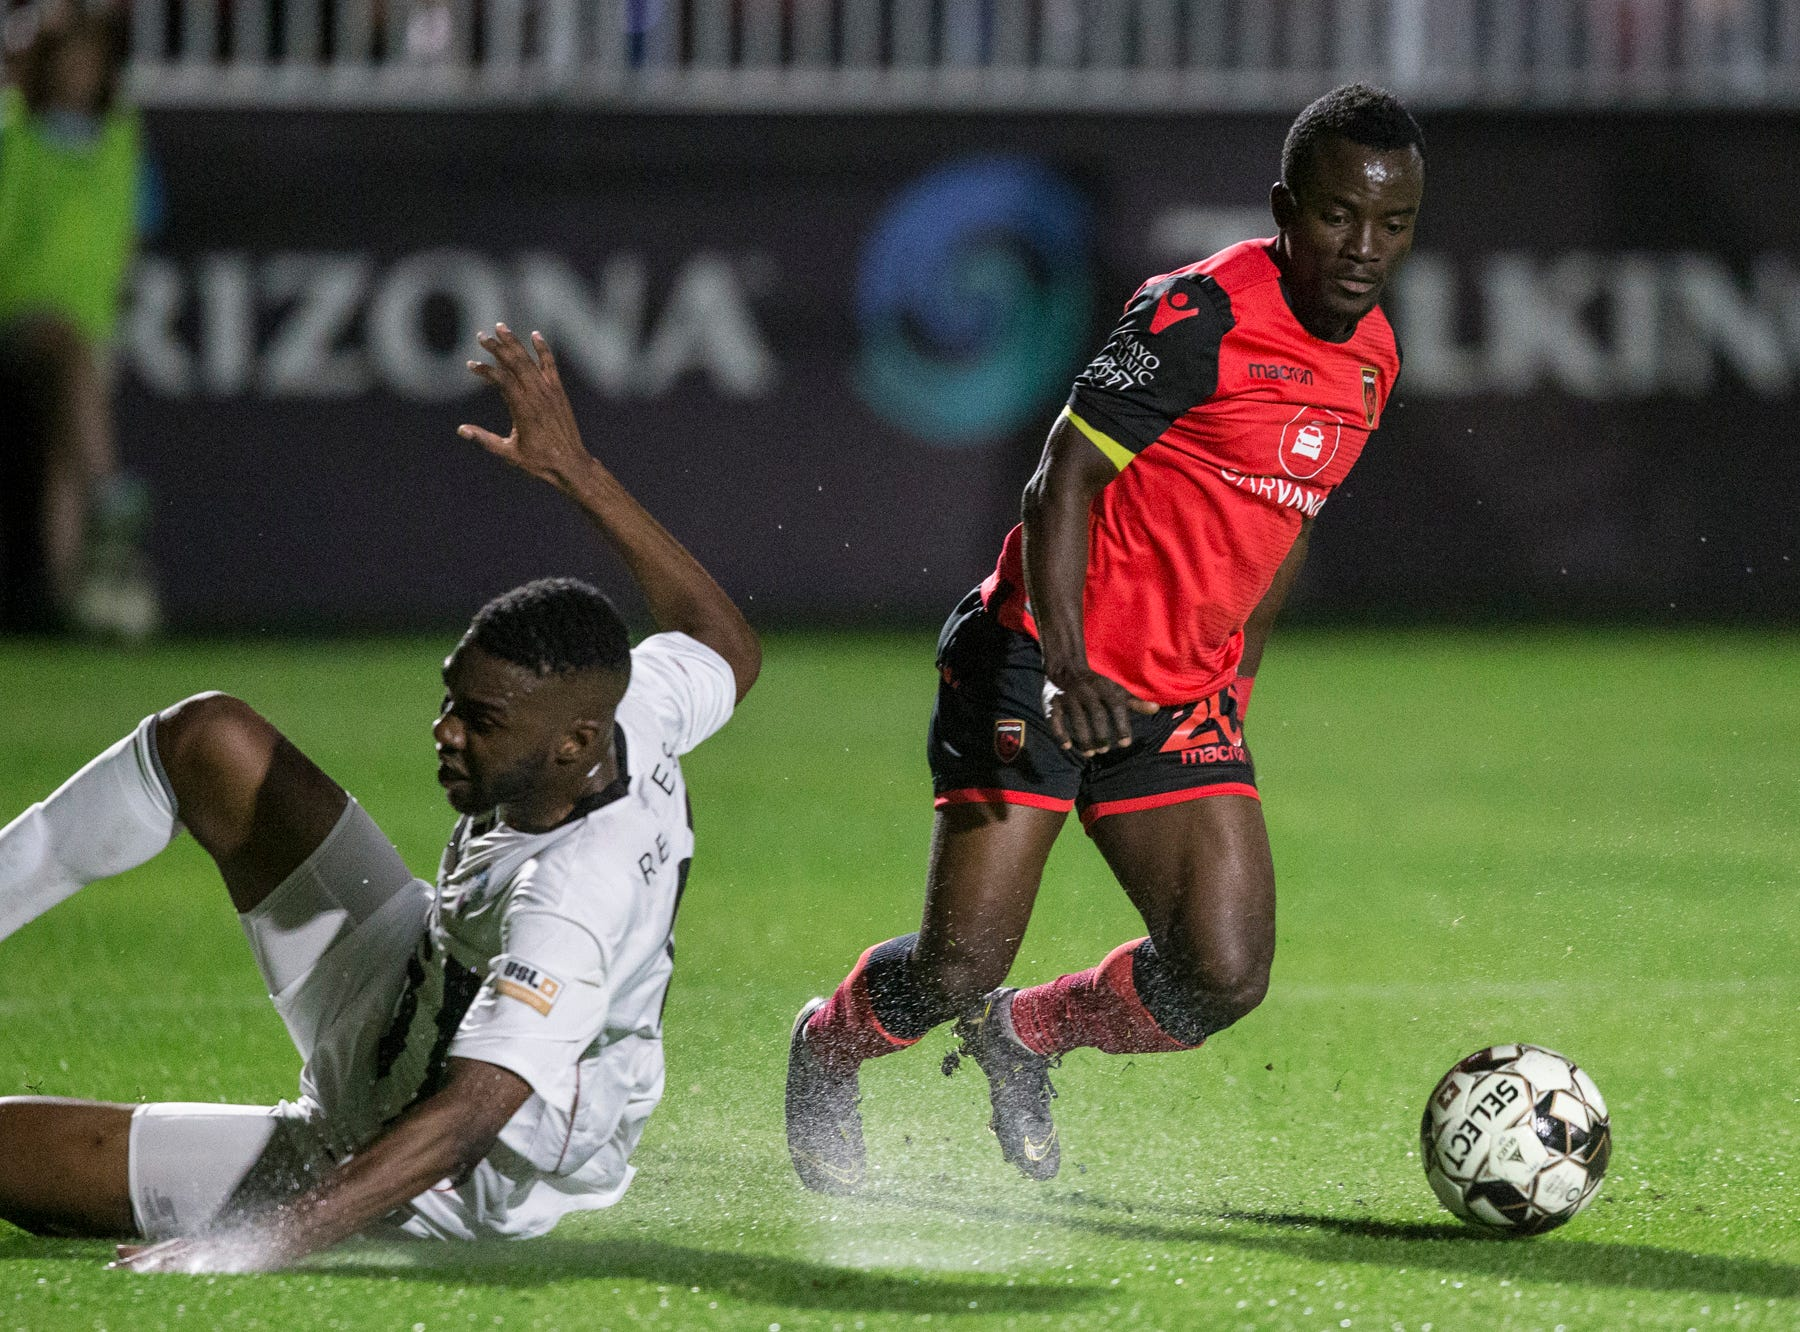 Phoenix Rising's Solomon Asante drives toward the goal against Colorado Springs in the first half on Saturday, Mar. 30, 2019, at Casino Arizona Field in Tempe, Ariz.